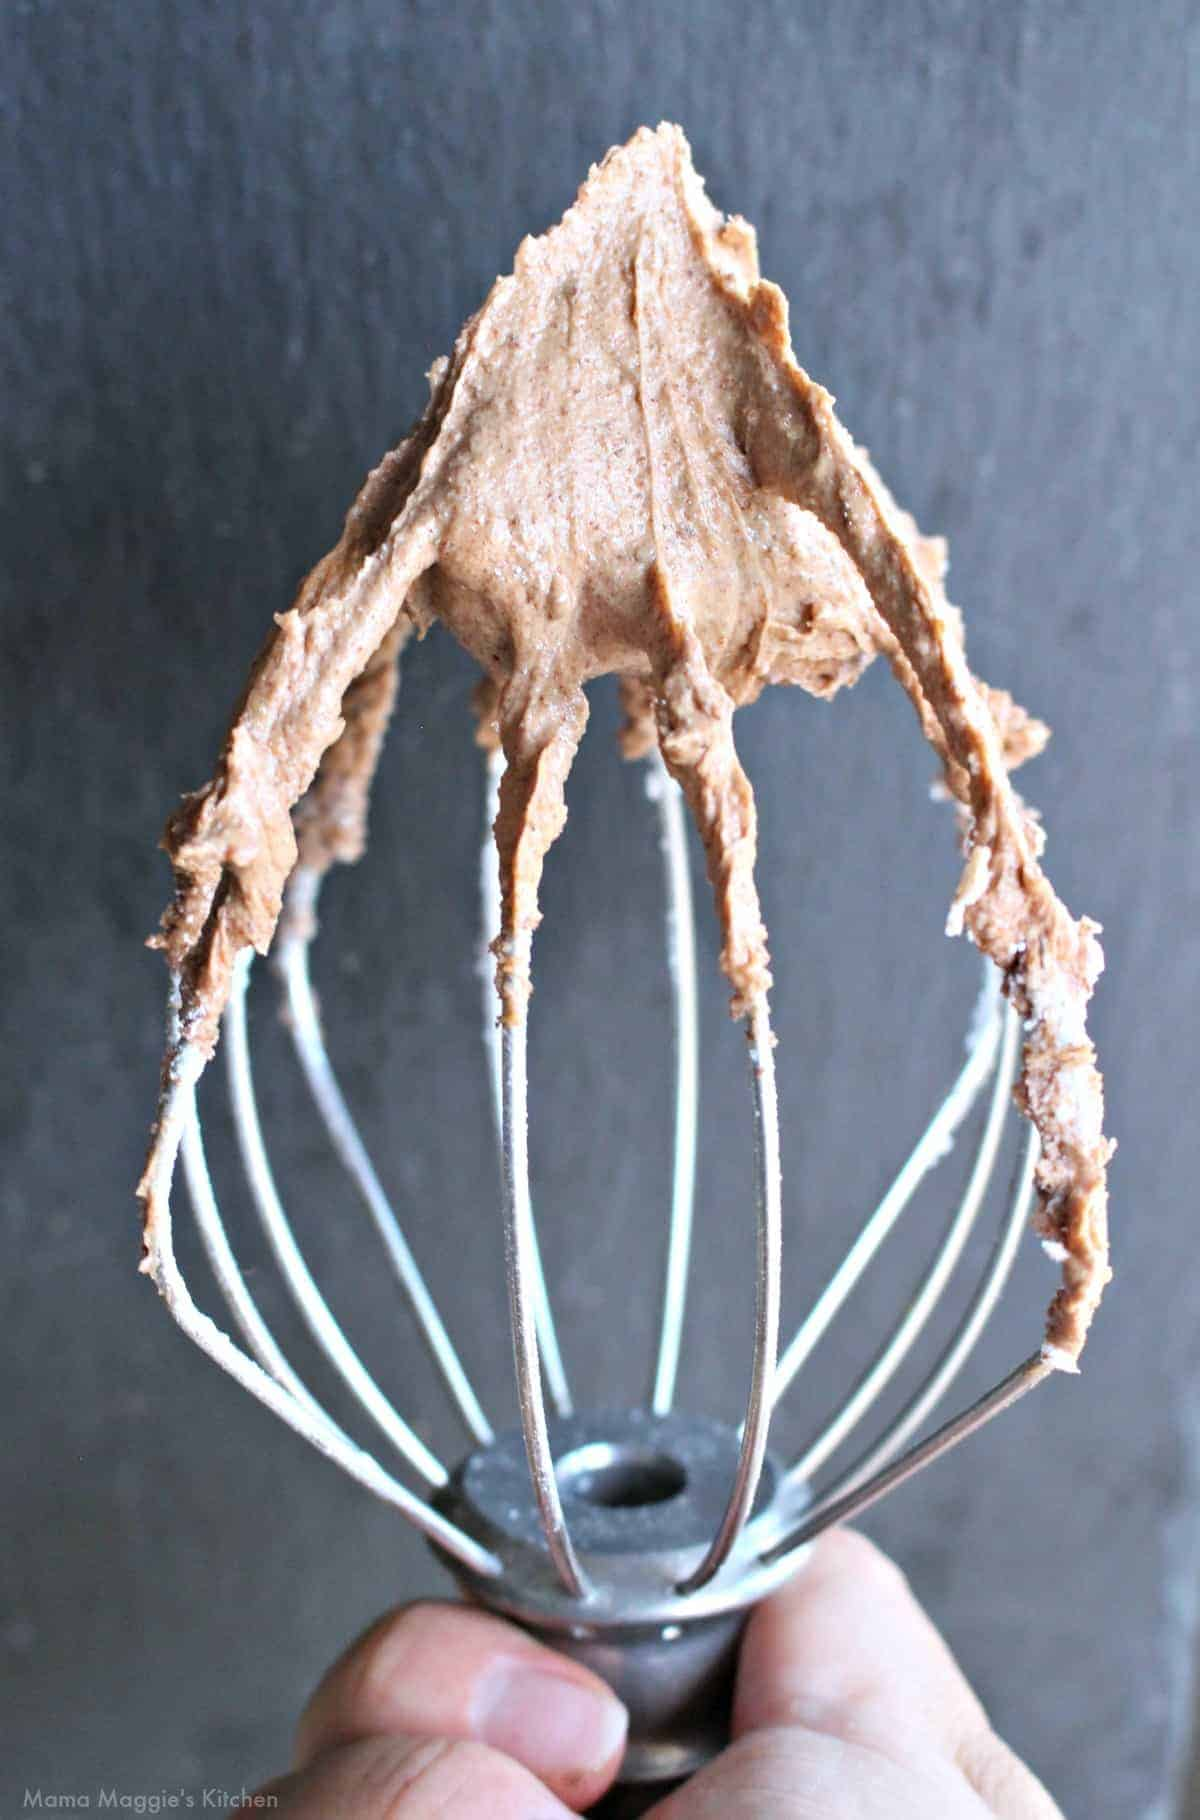 A hand holding a mixer attachment with covered with Abuelita Chocolate Frosting.